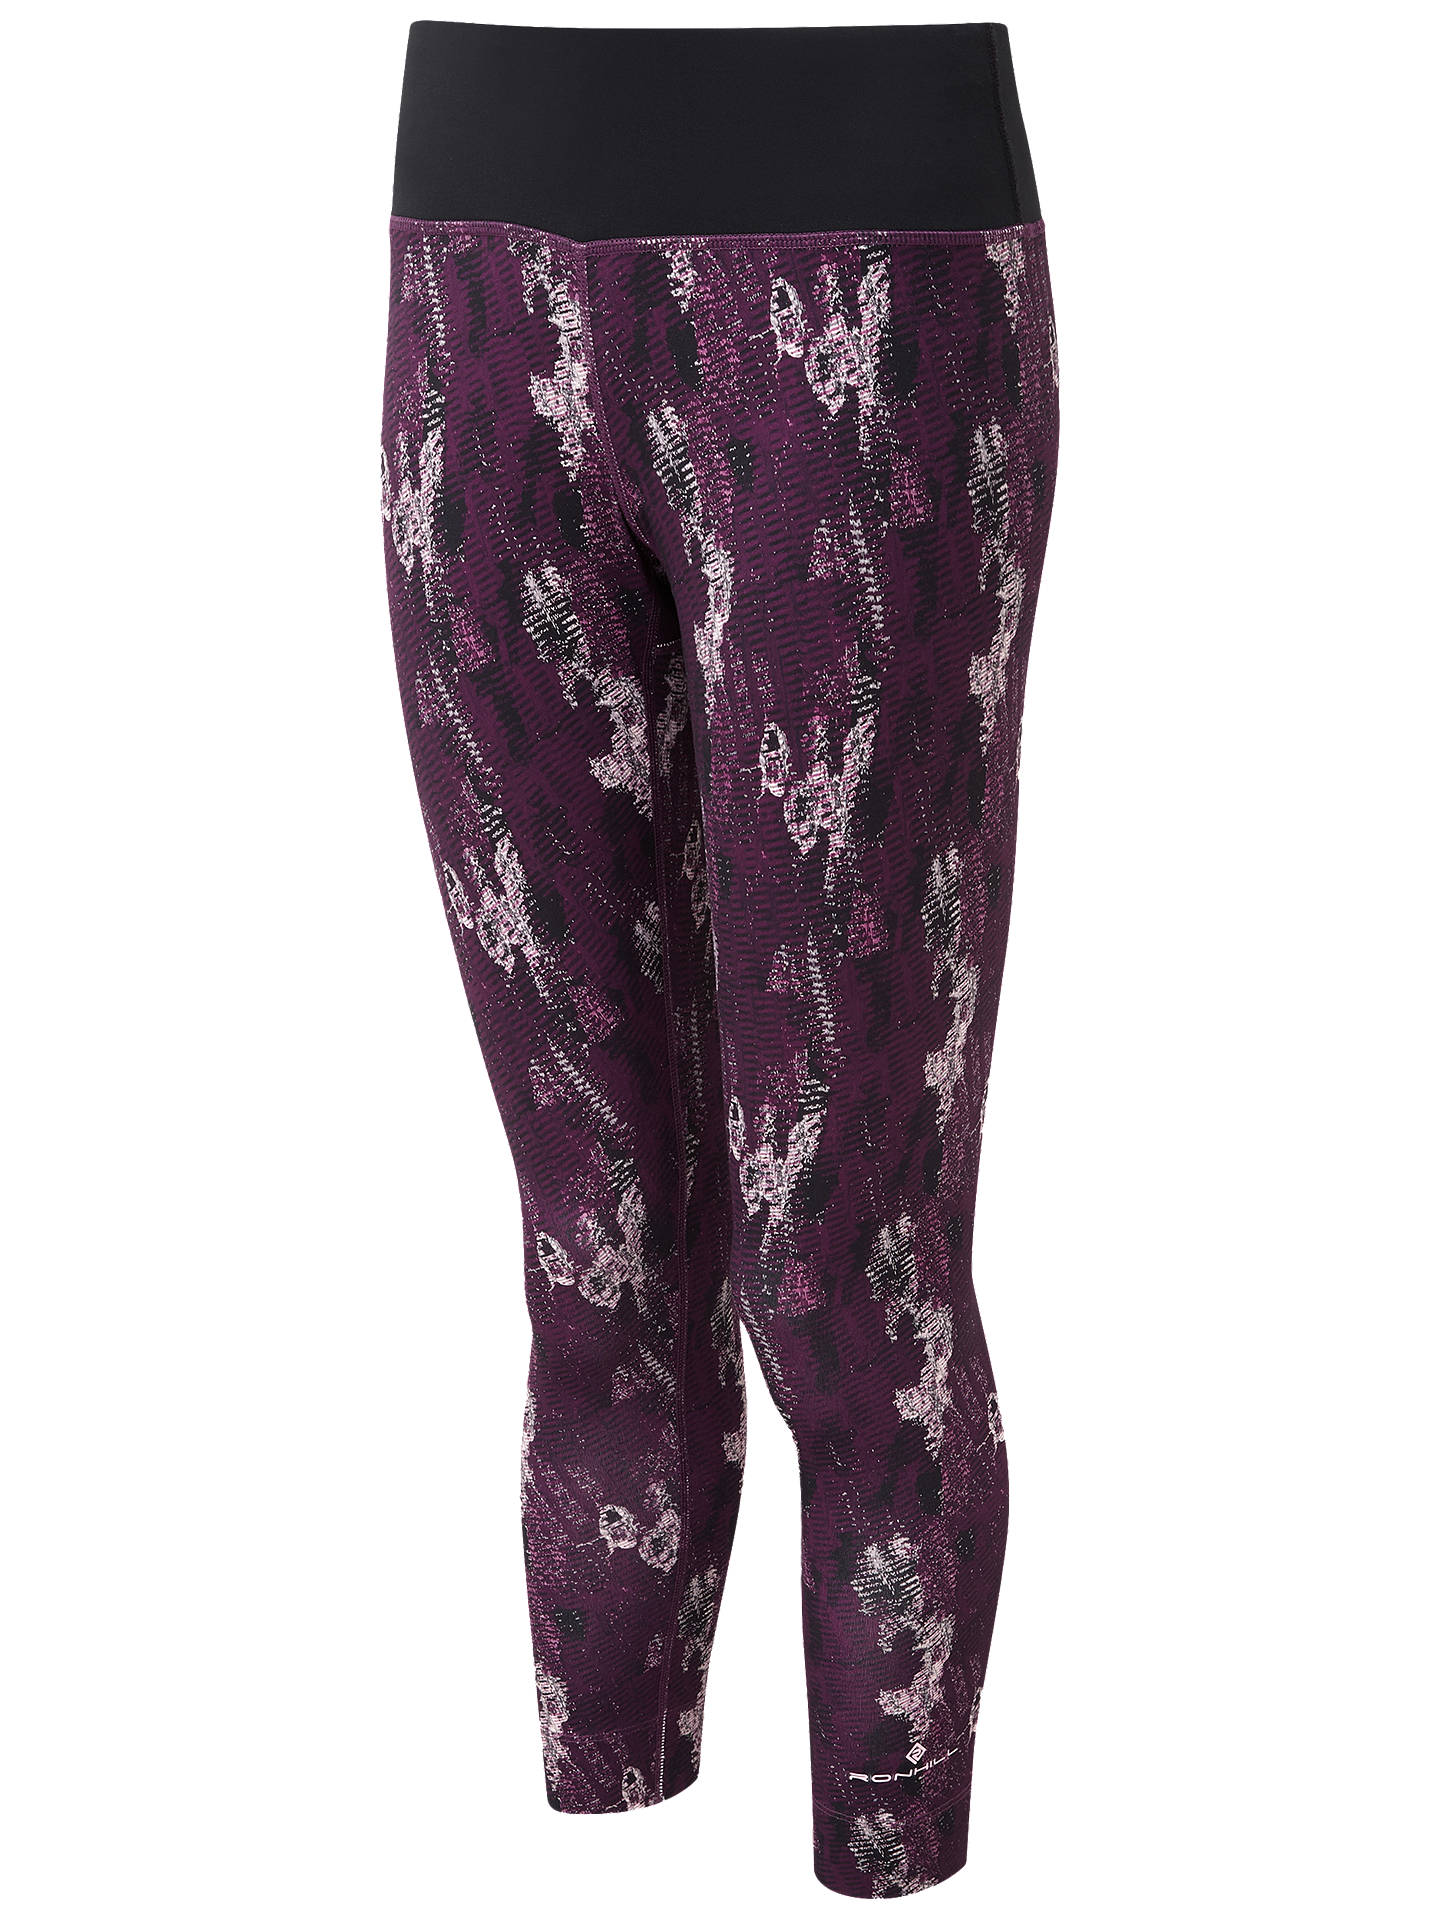 BuyRonhill Momentum Cropped Running Tights, Aubergine Cloud, 8 Online at johnlewis.com